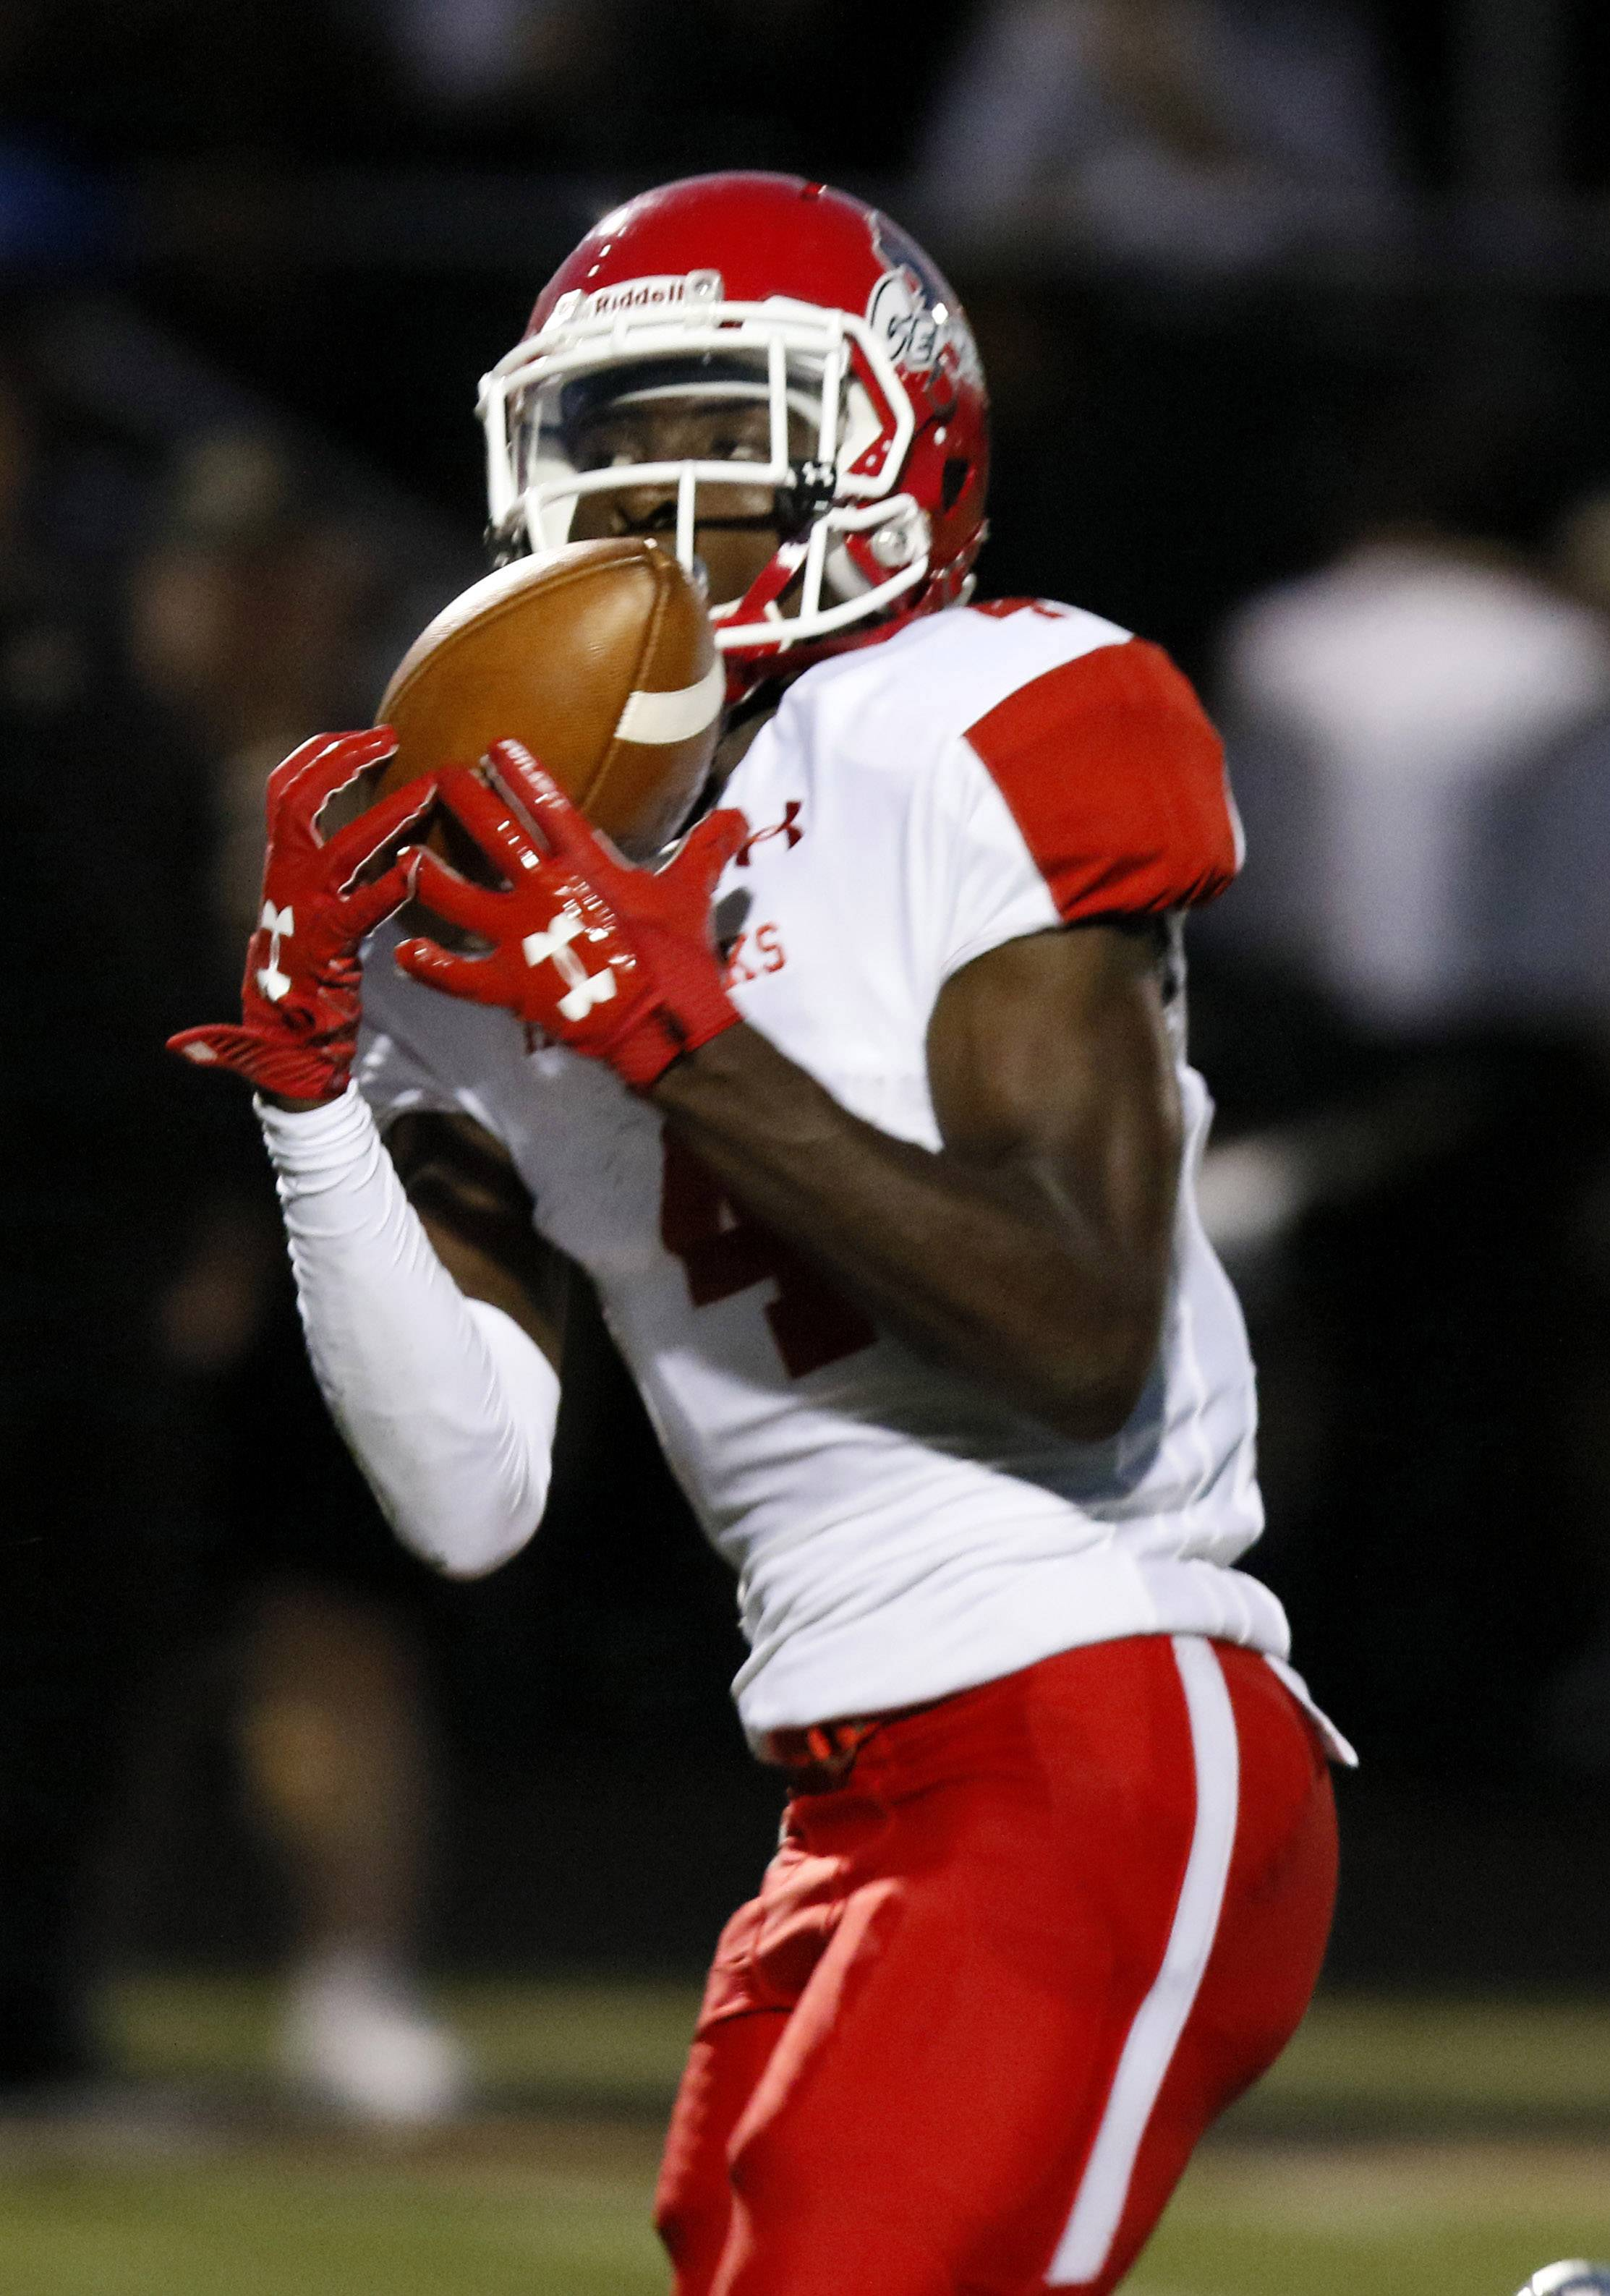 Naperville Central's Jayden Reed hauls in a first quarter touchdown catch against Glenbard North, during opening night football action in Carol Stream.